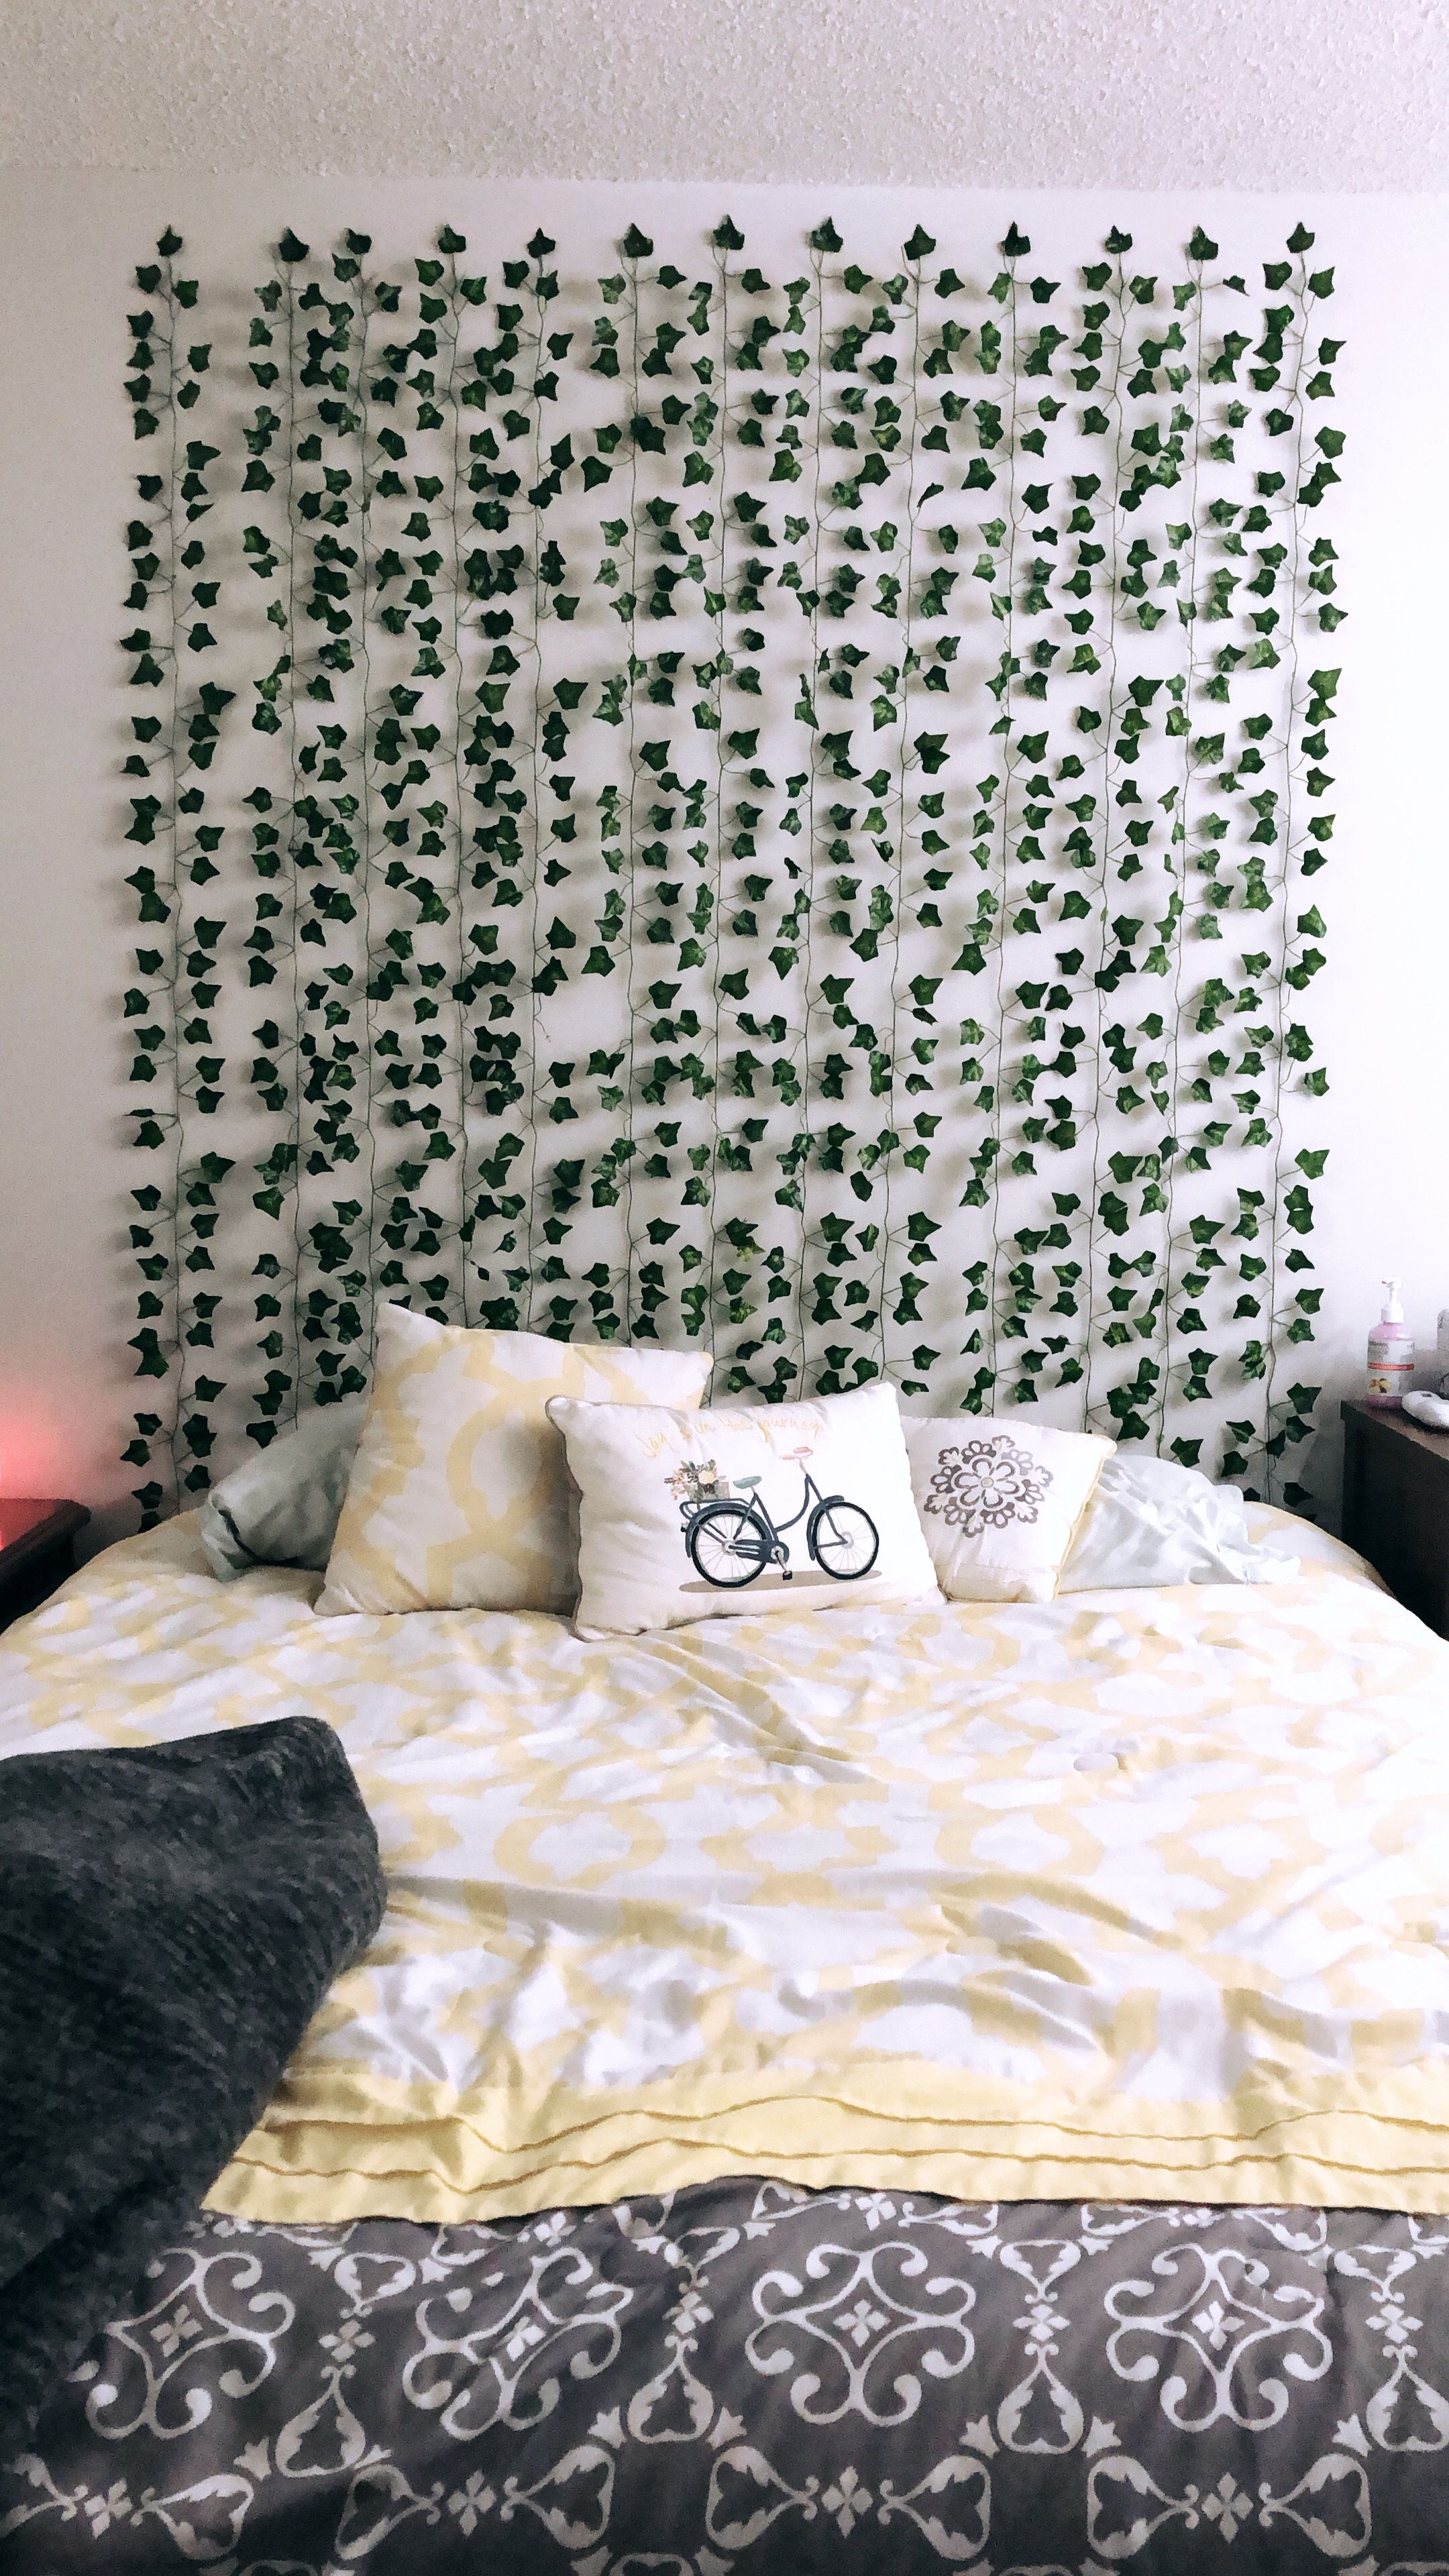 Cute And Simple Vines On A Wall Dorm Room Styles Aesthetic